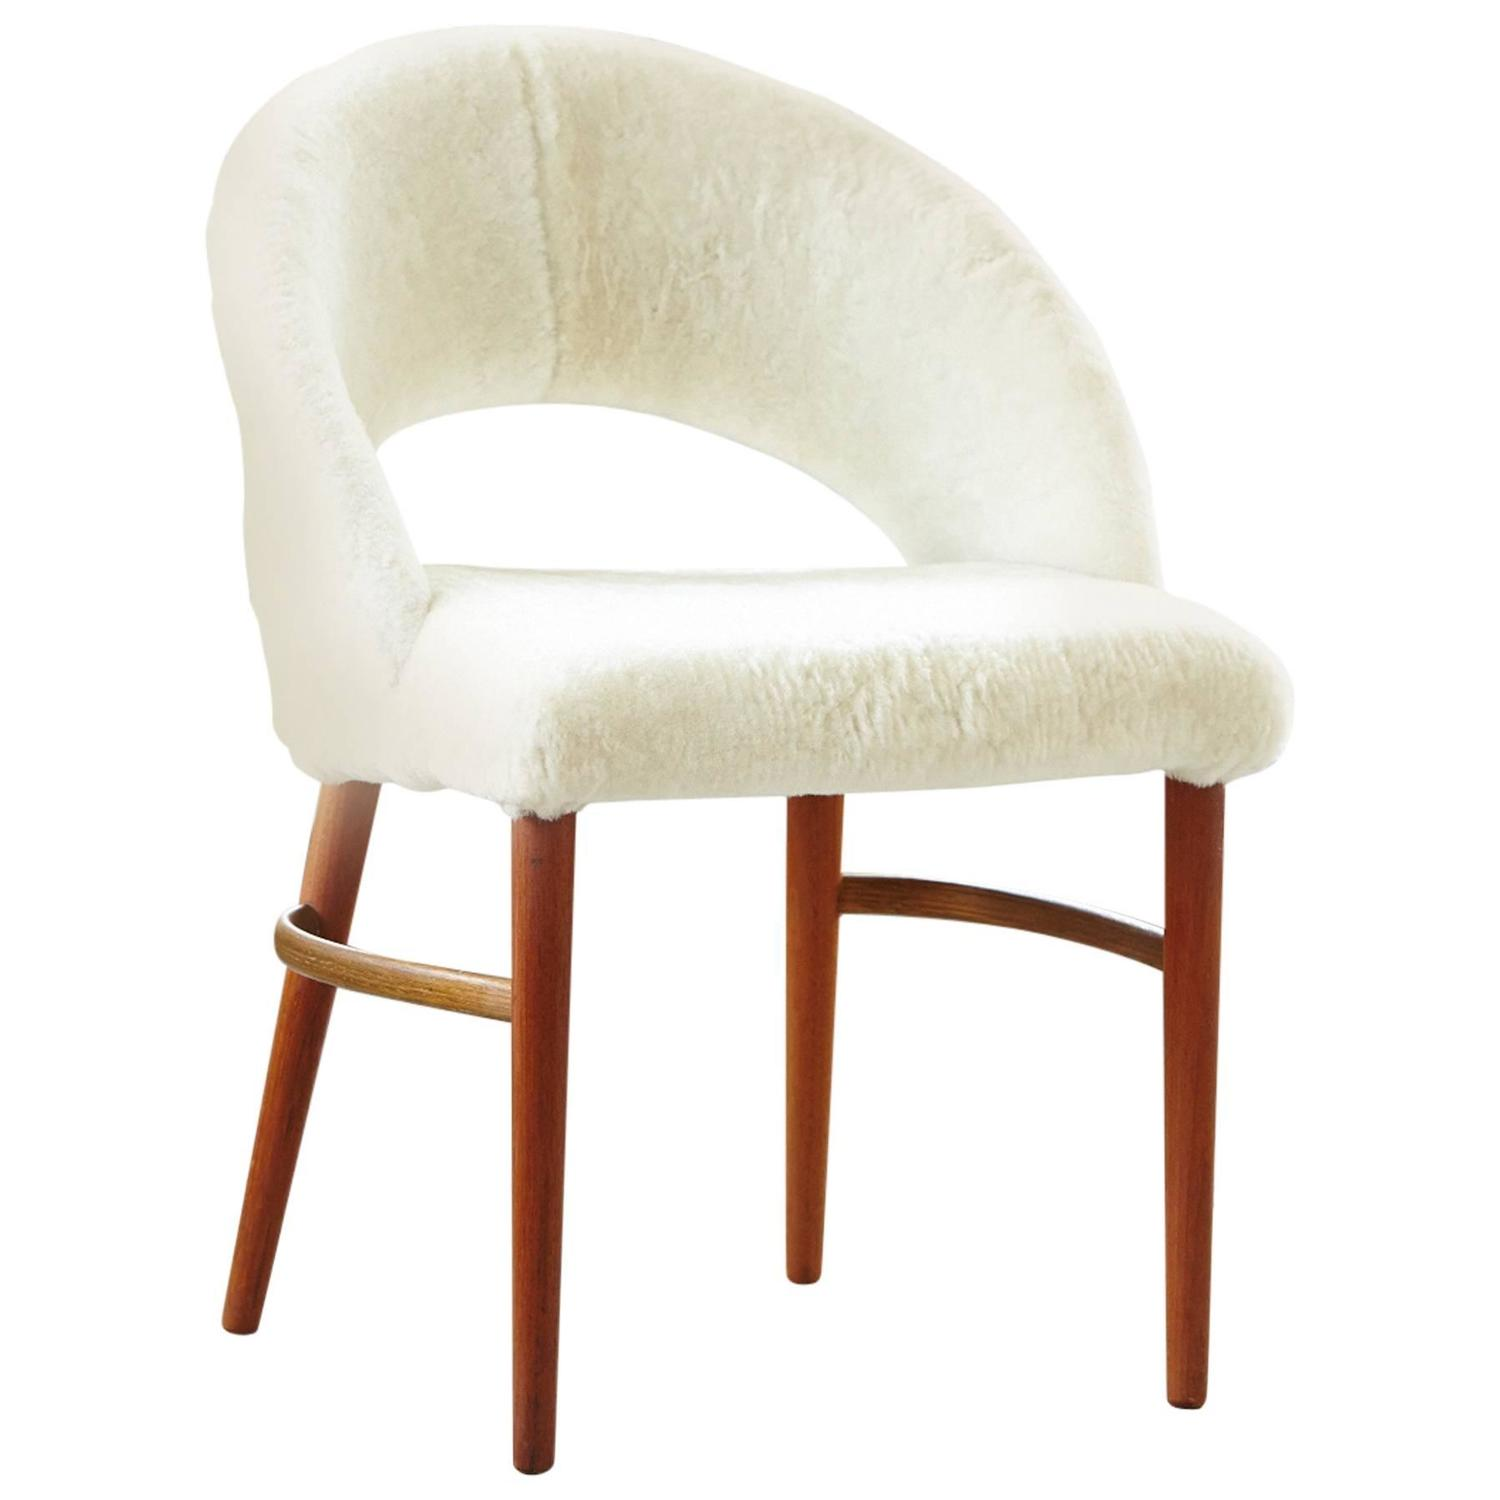 Comfortable Vanity Chair Vanity Or Accent Chair In Genuine Lambskin By Frode Holm